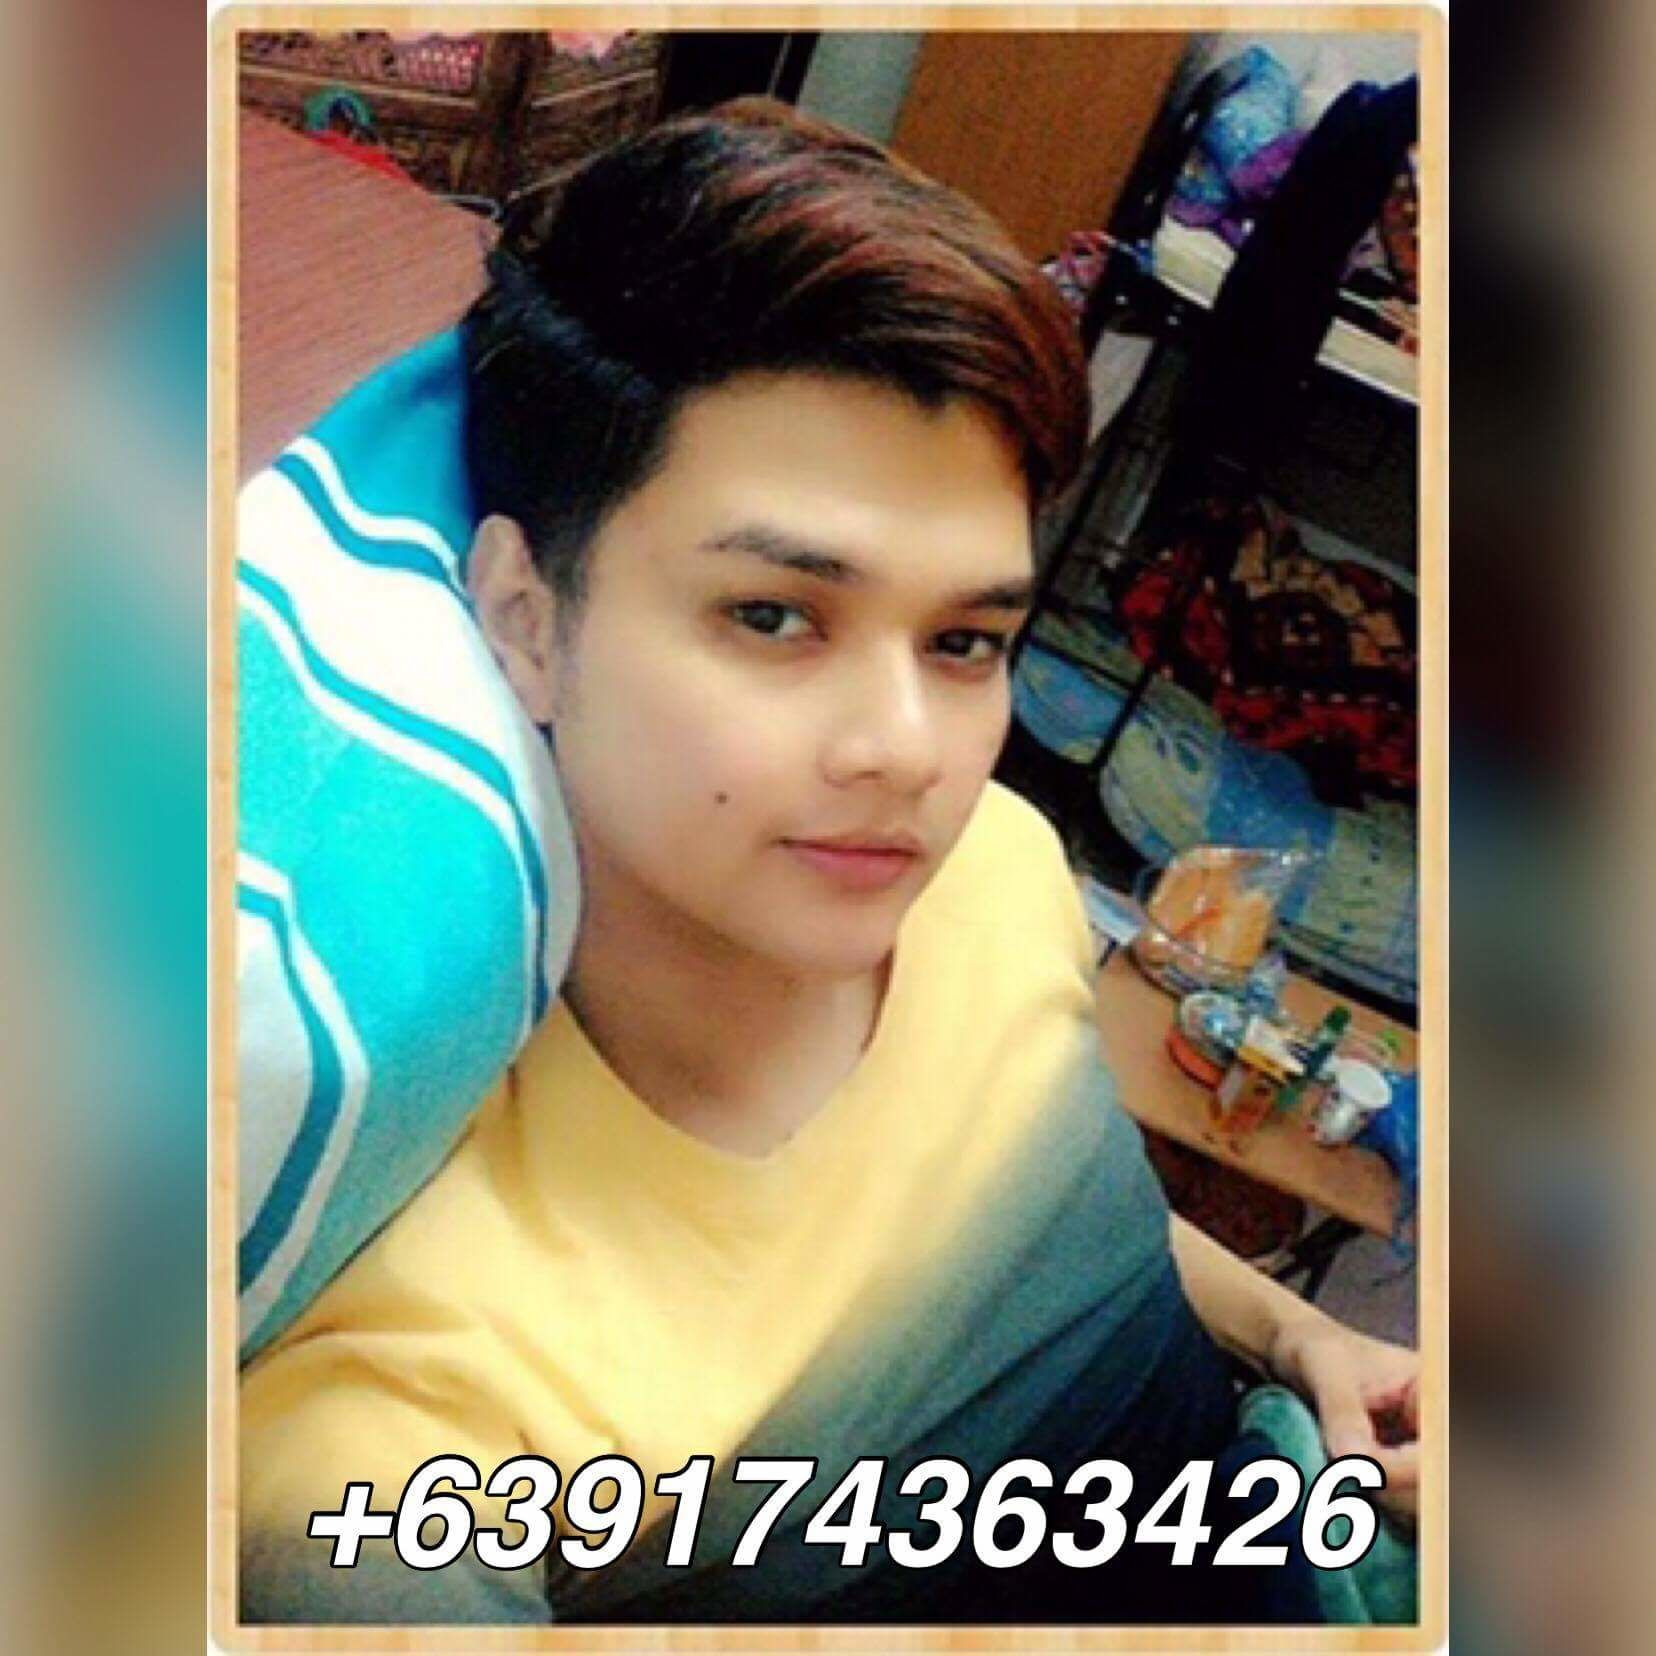 gay boysporn philippines escort